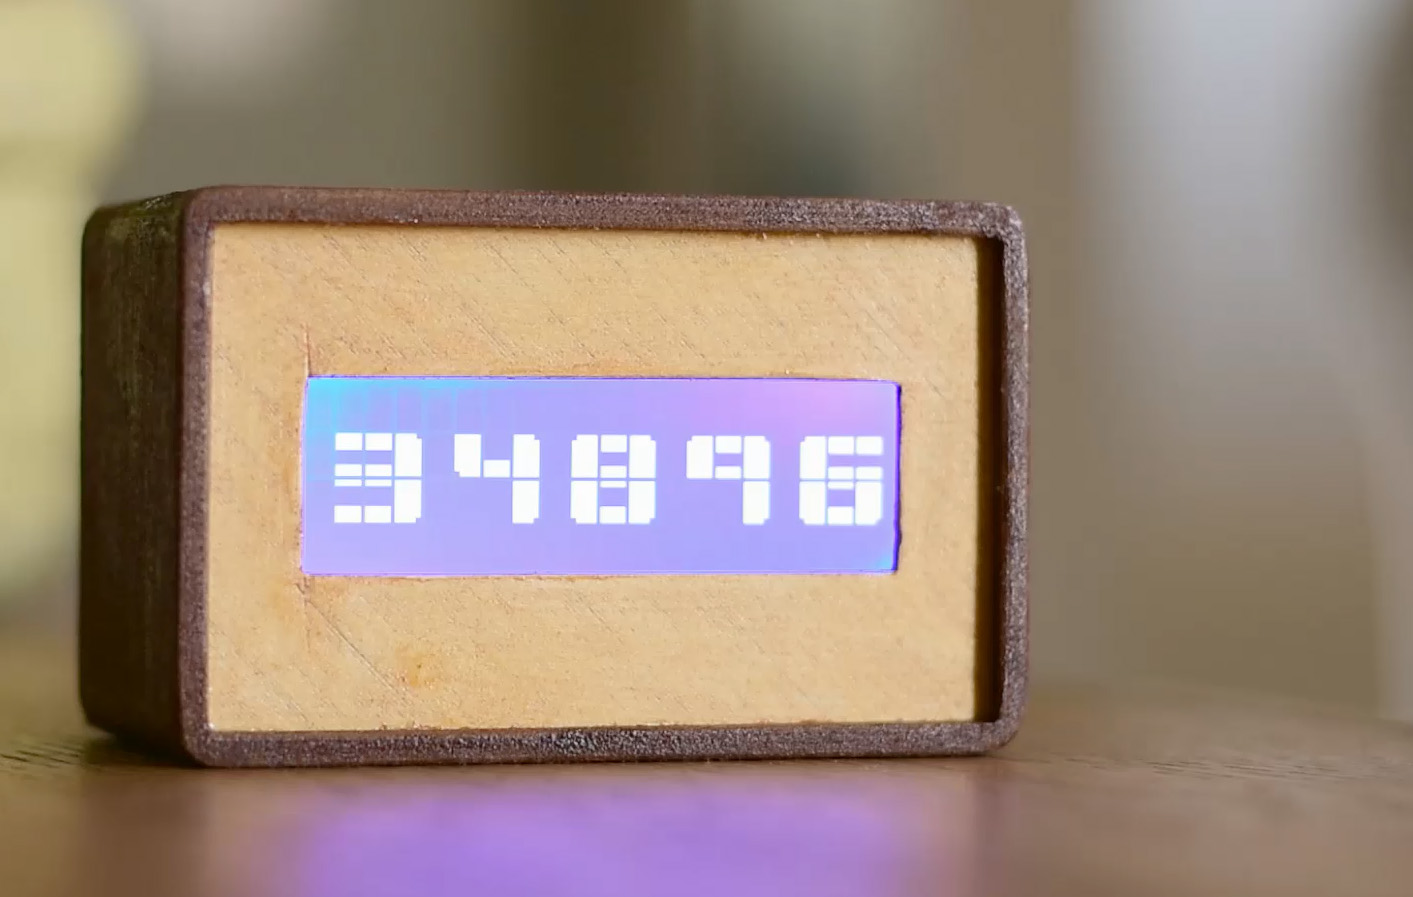 Picture of YouTube Subscriber Counter Using an ESP8266 Board